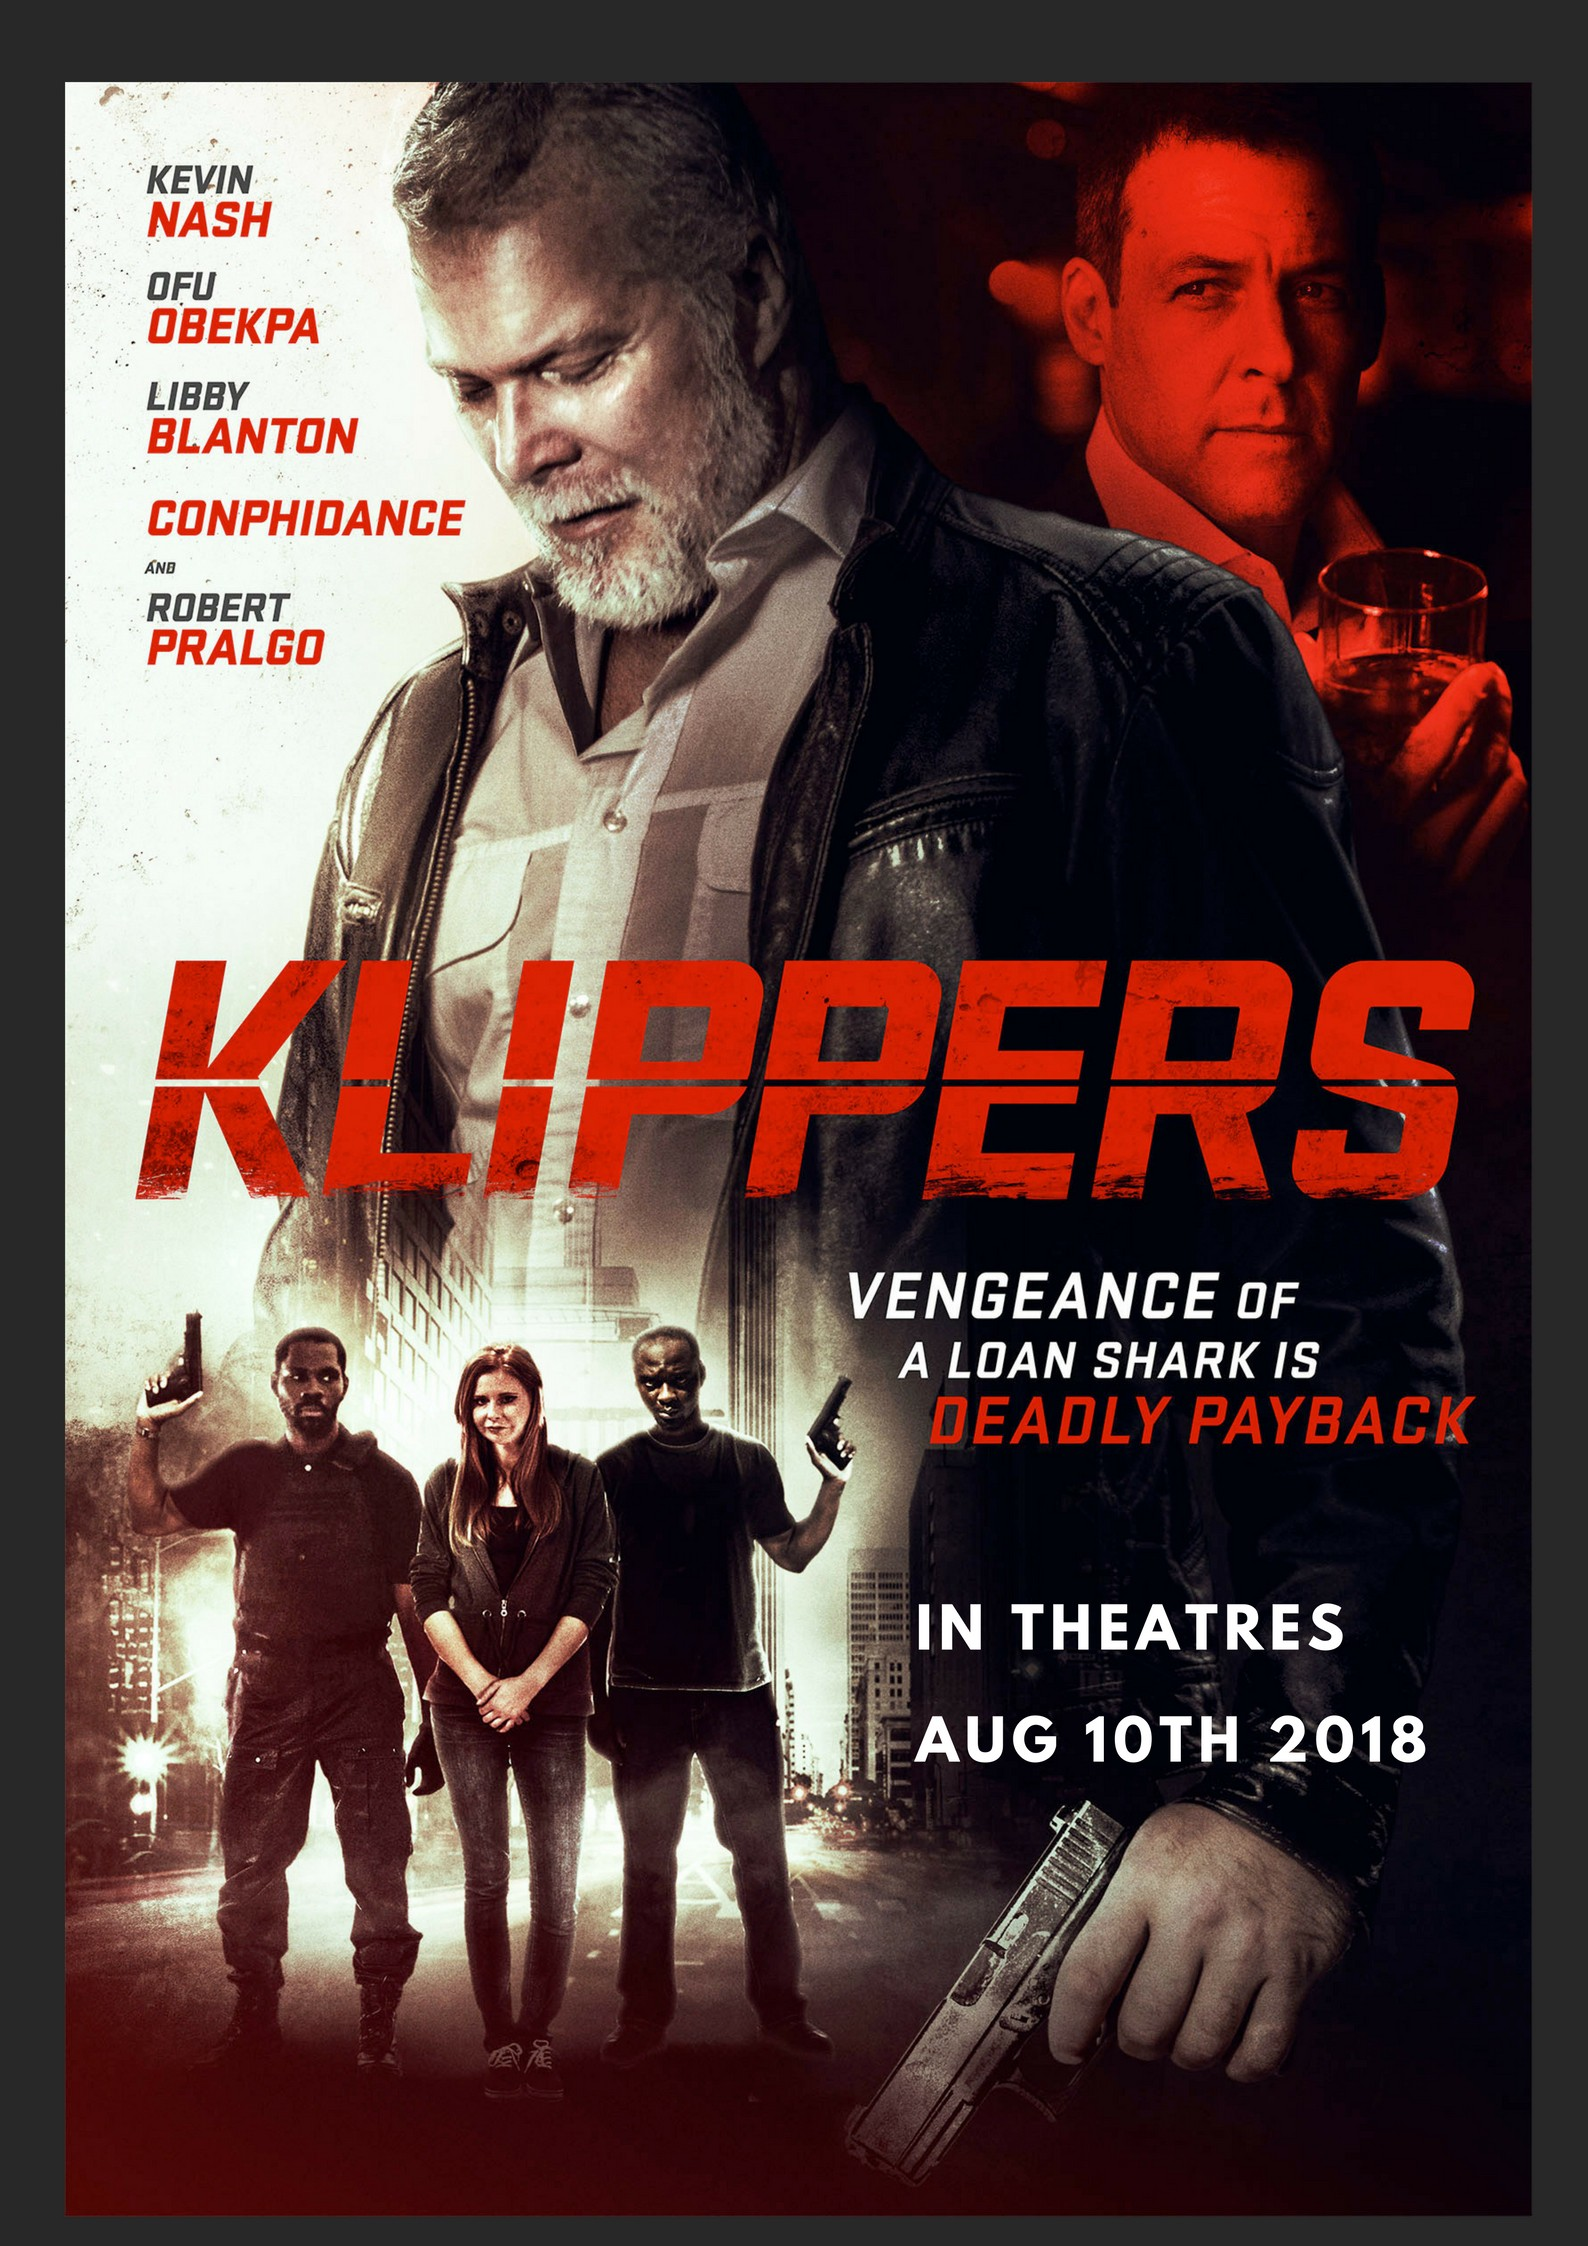 Ofu Obekpa, WWE Legend Kevin Nash, Conphidance, Libby Blanton, star in mind blowing action movie ?Klippers?